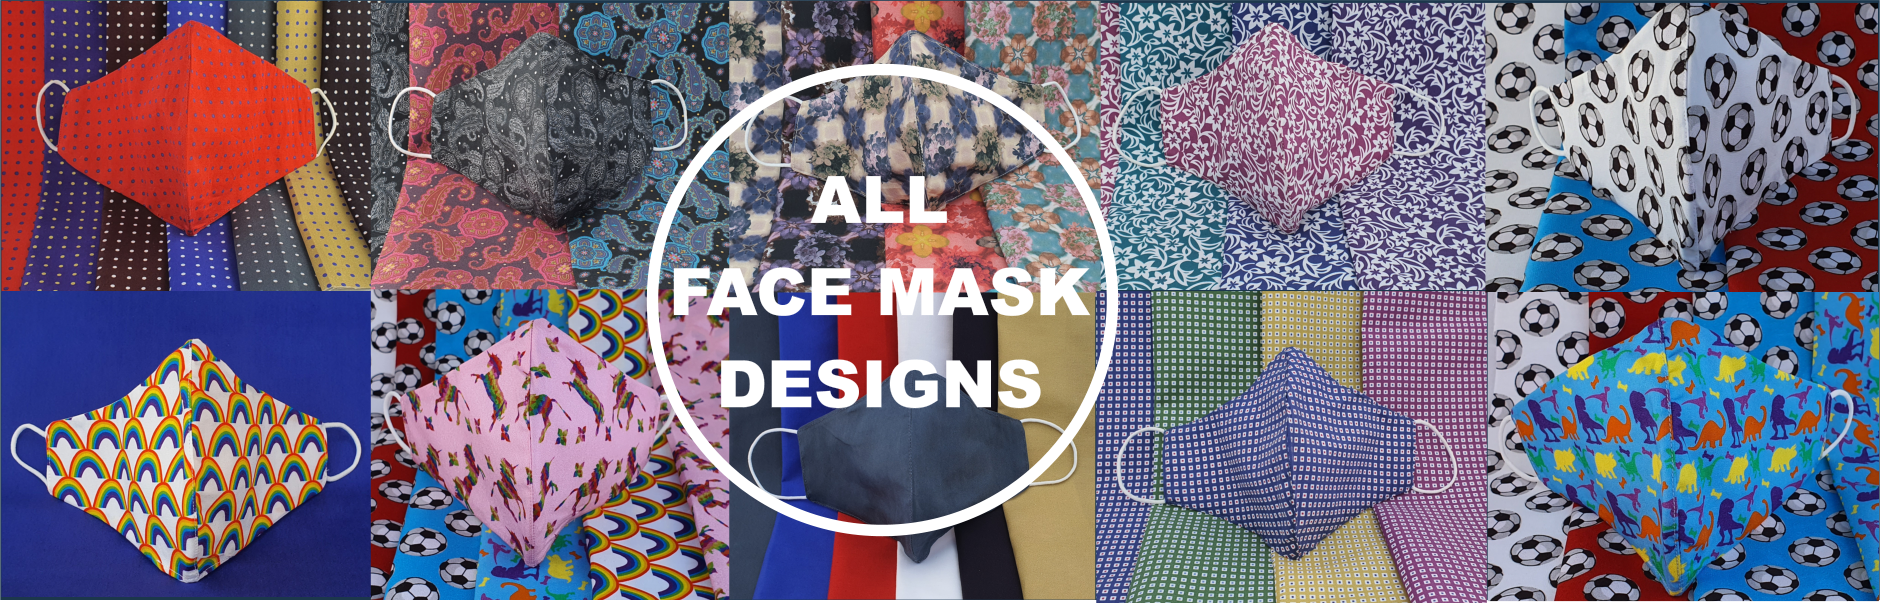 All Face Mask Designs